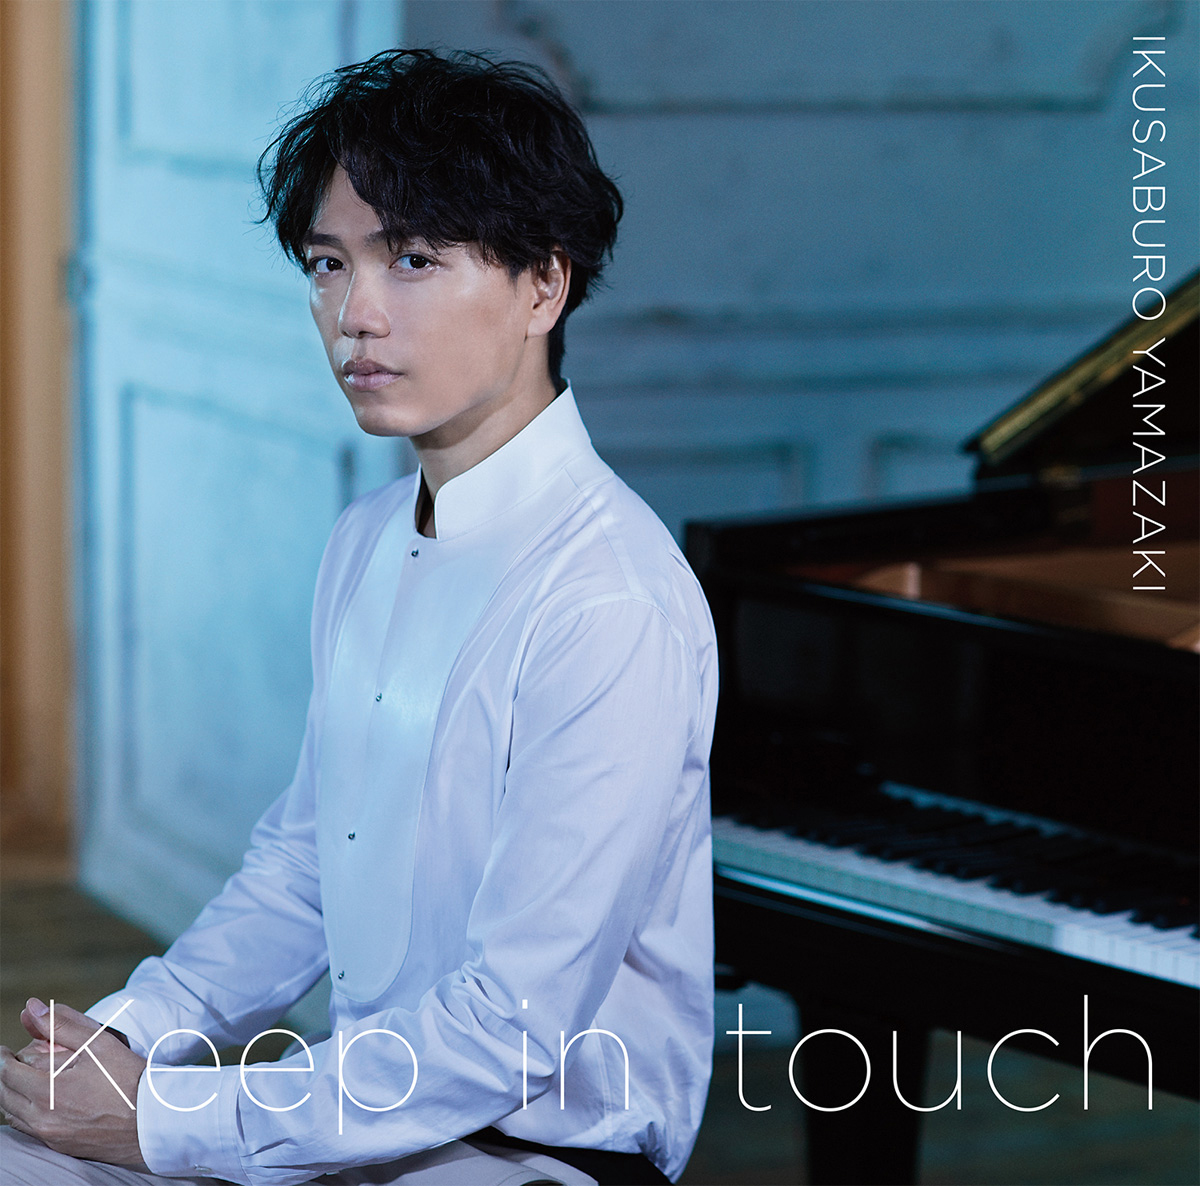 「Keep in touch」通常盤